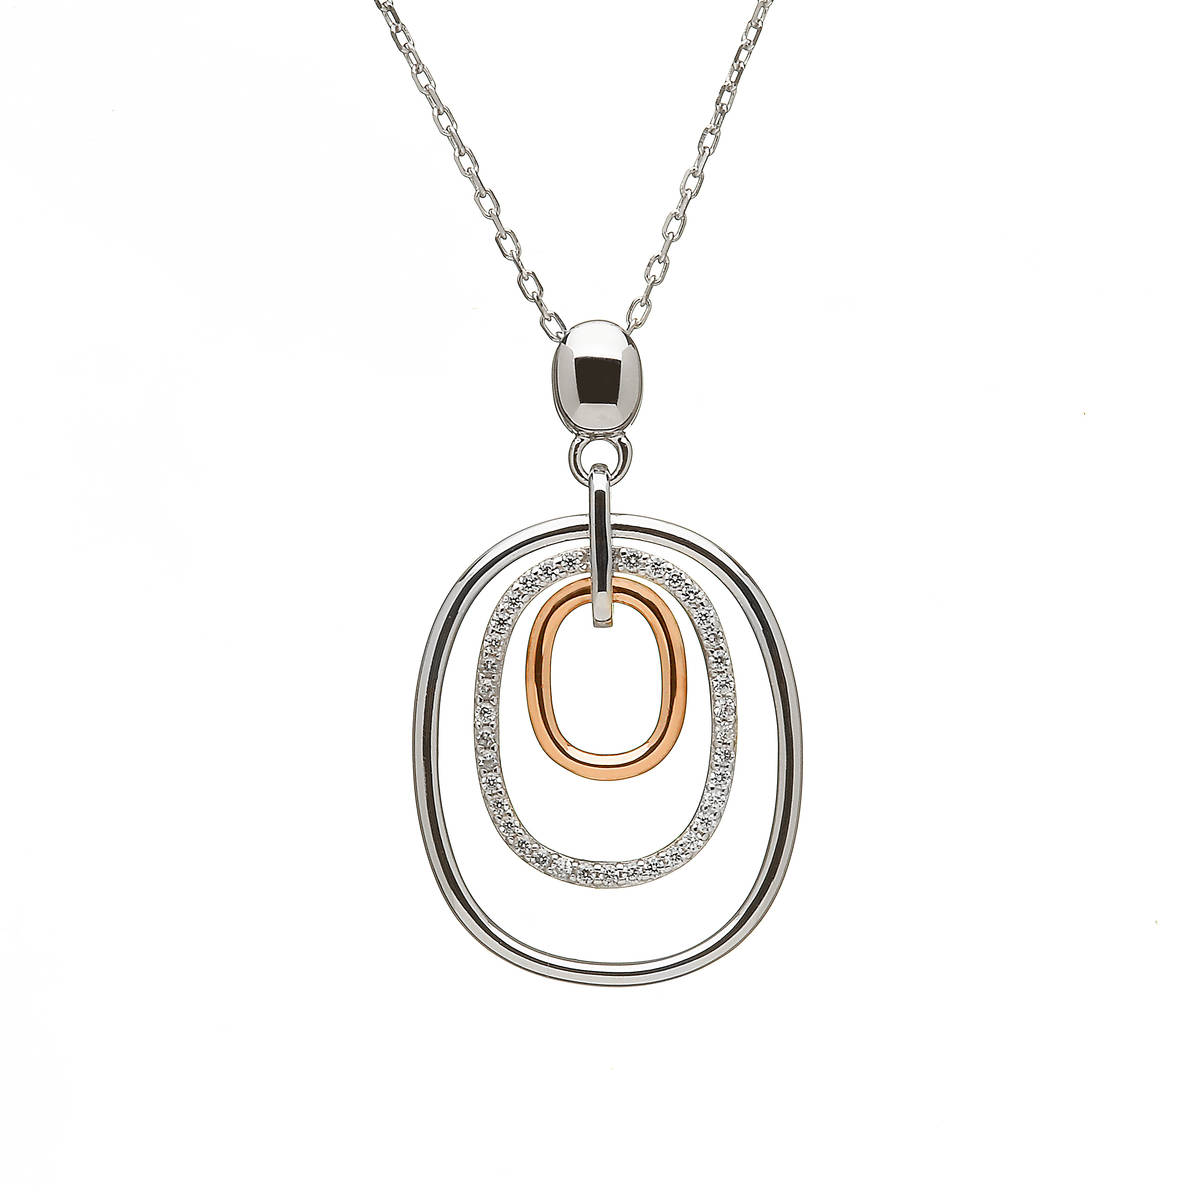 silver and rare Irish rose gold oval drop pendant with white topaz simulated czs.